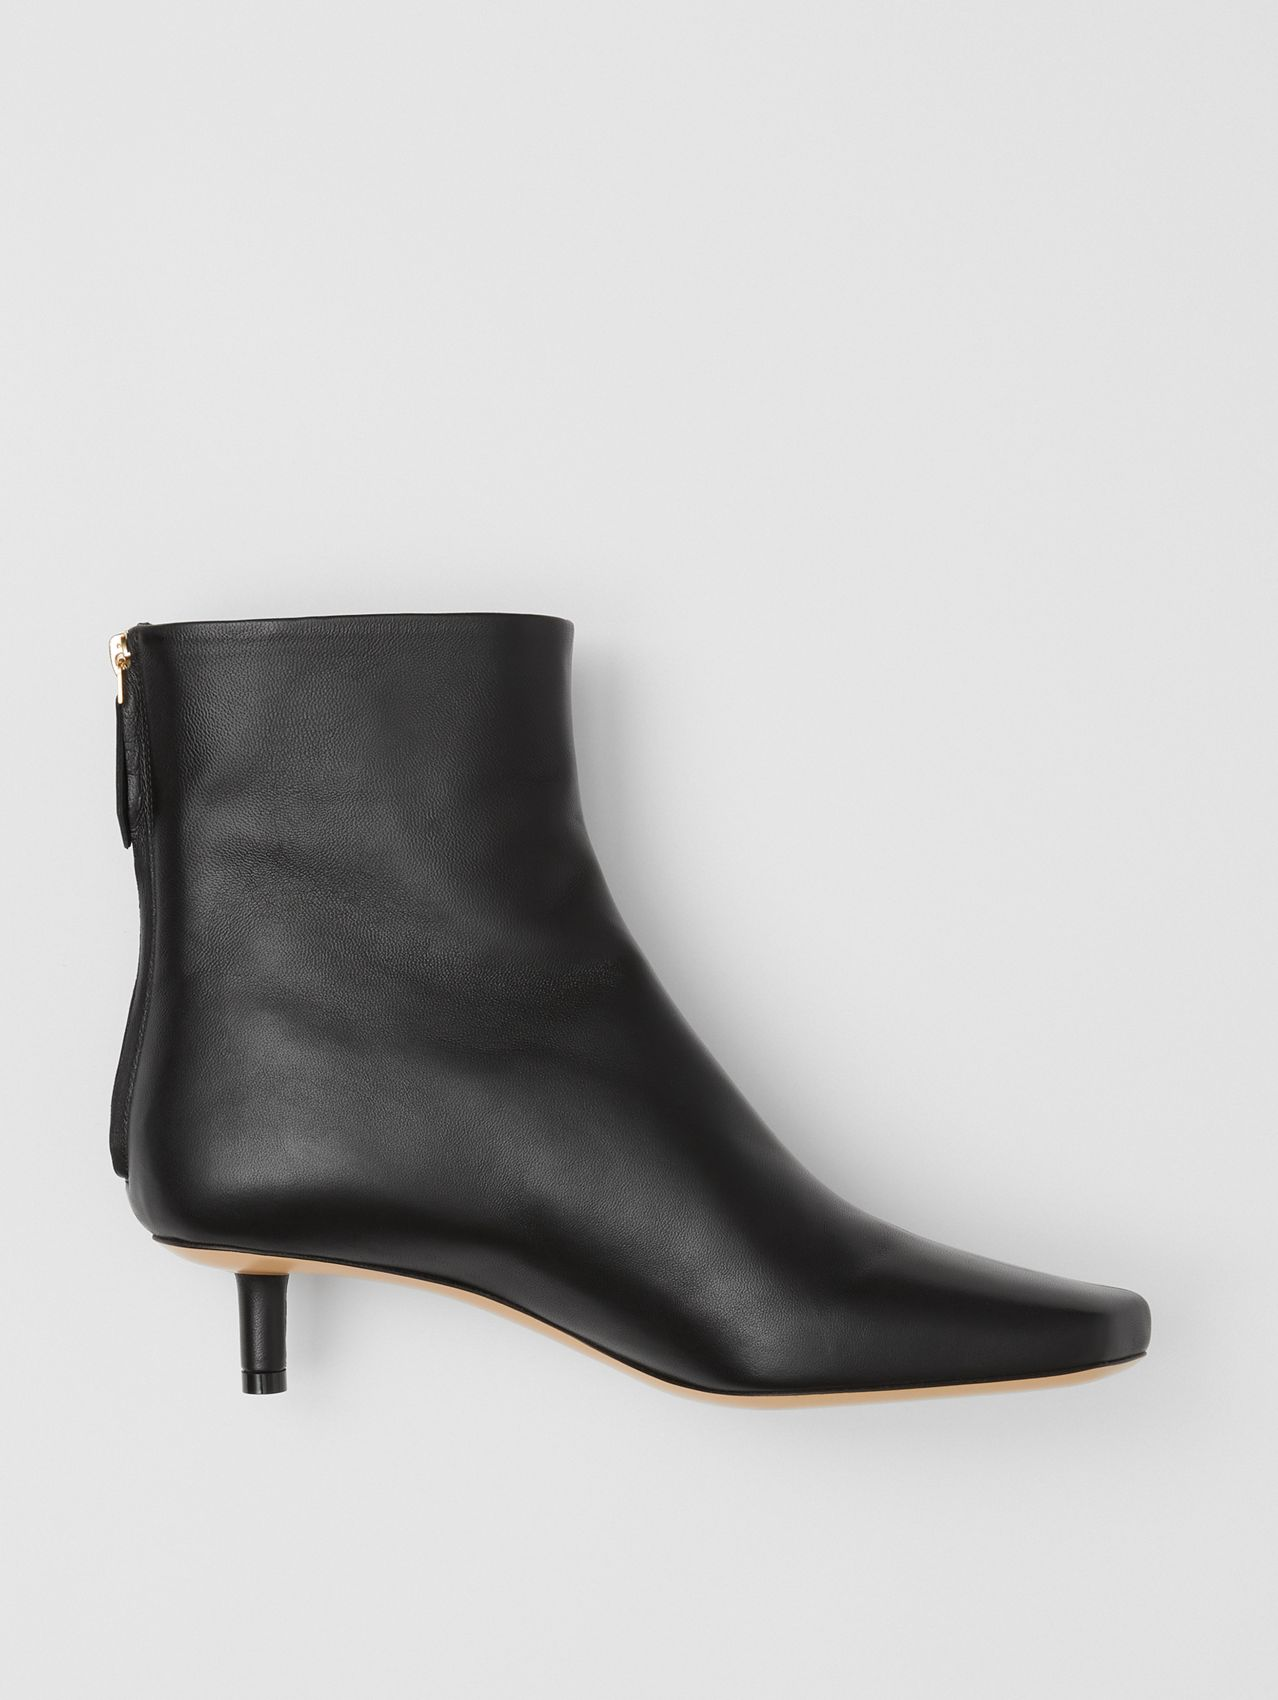 Lambskin Sculptural Kitten-heel Ankle Boots in Black